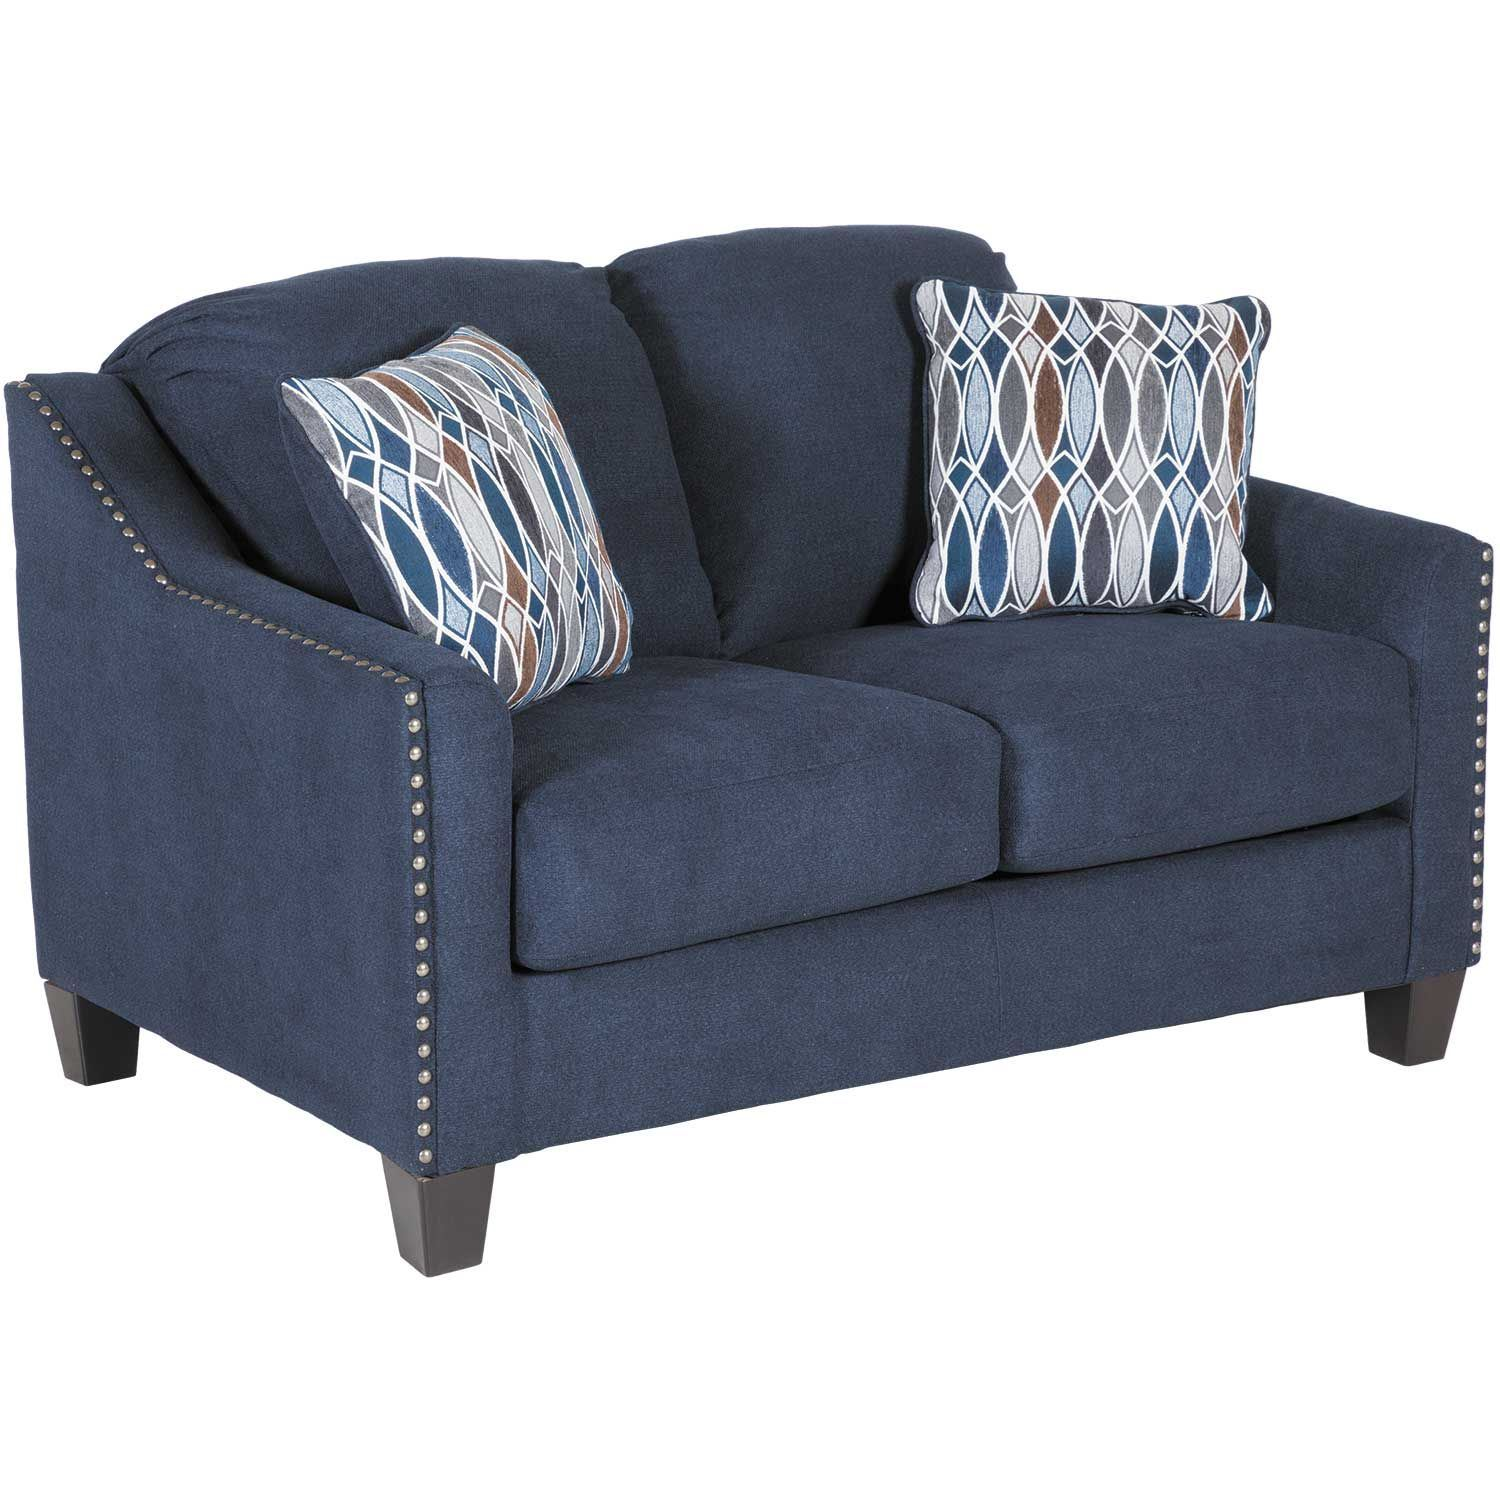 Creeal Heights Ink Loveseat 8020235 Ashley Furniture Afw